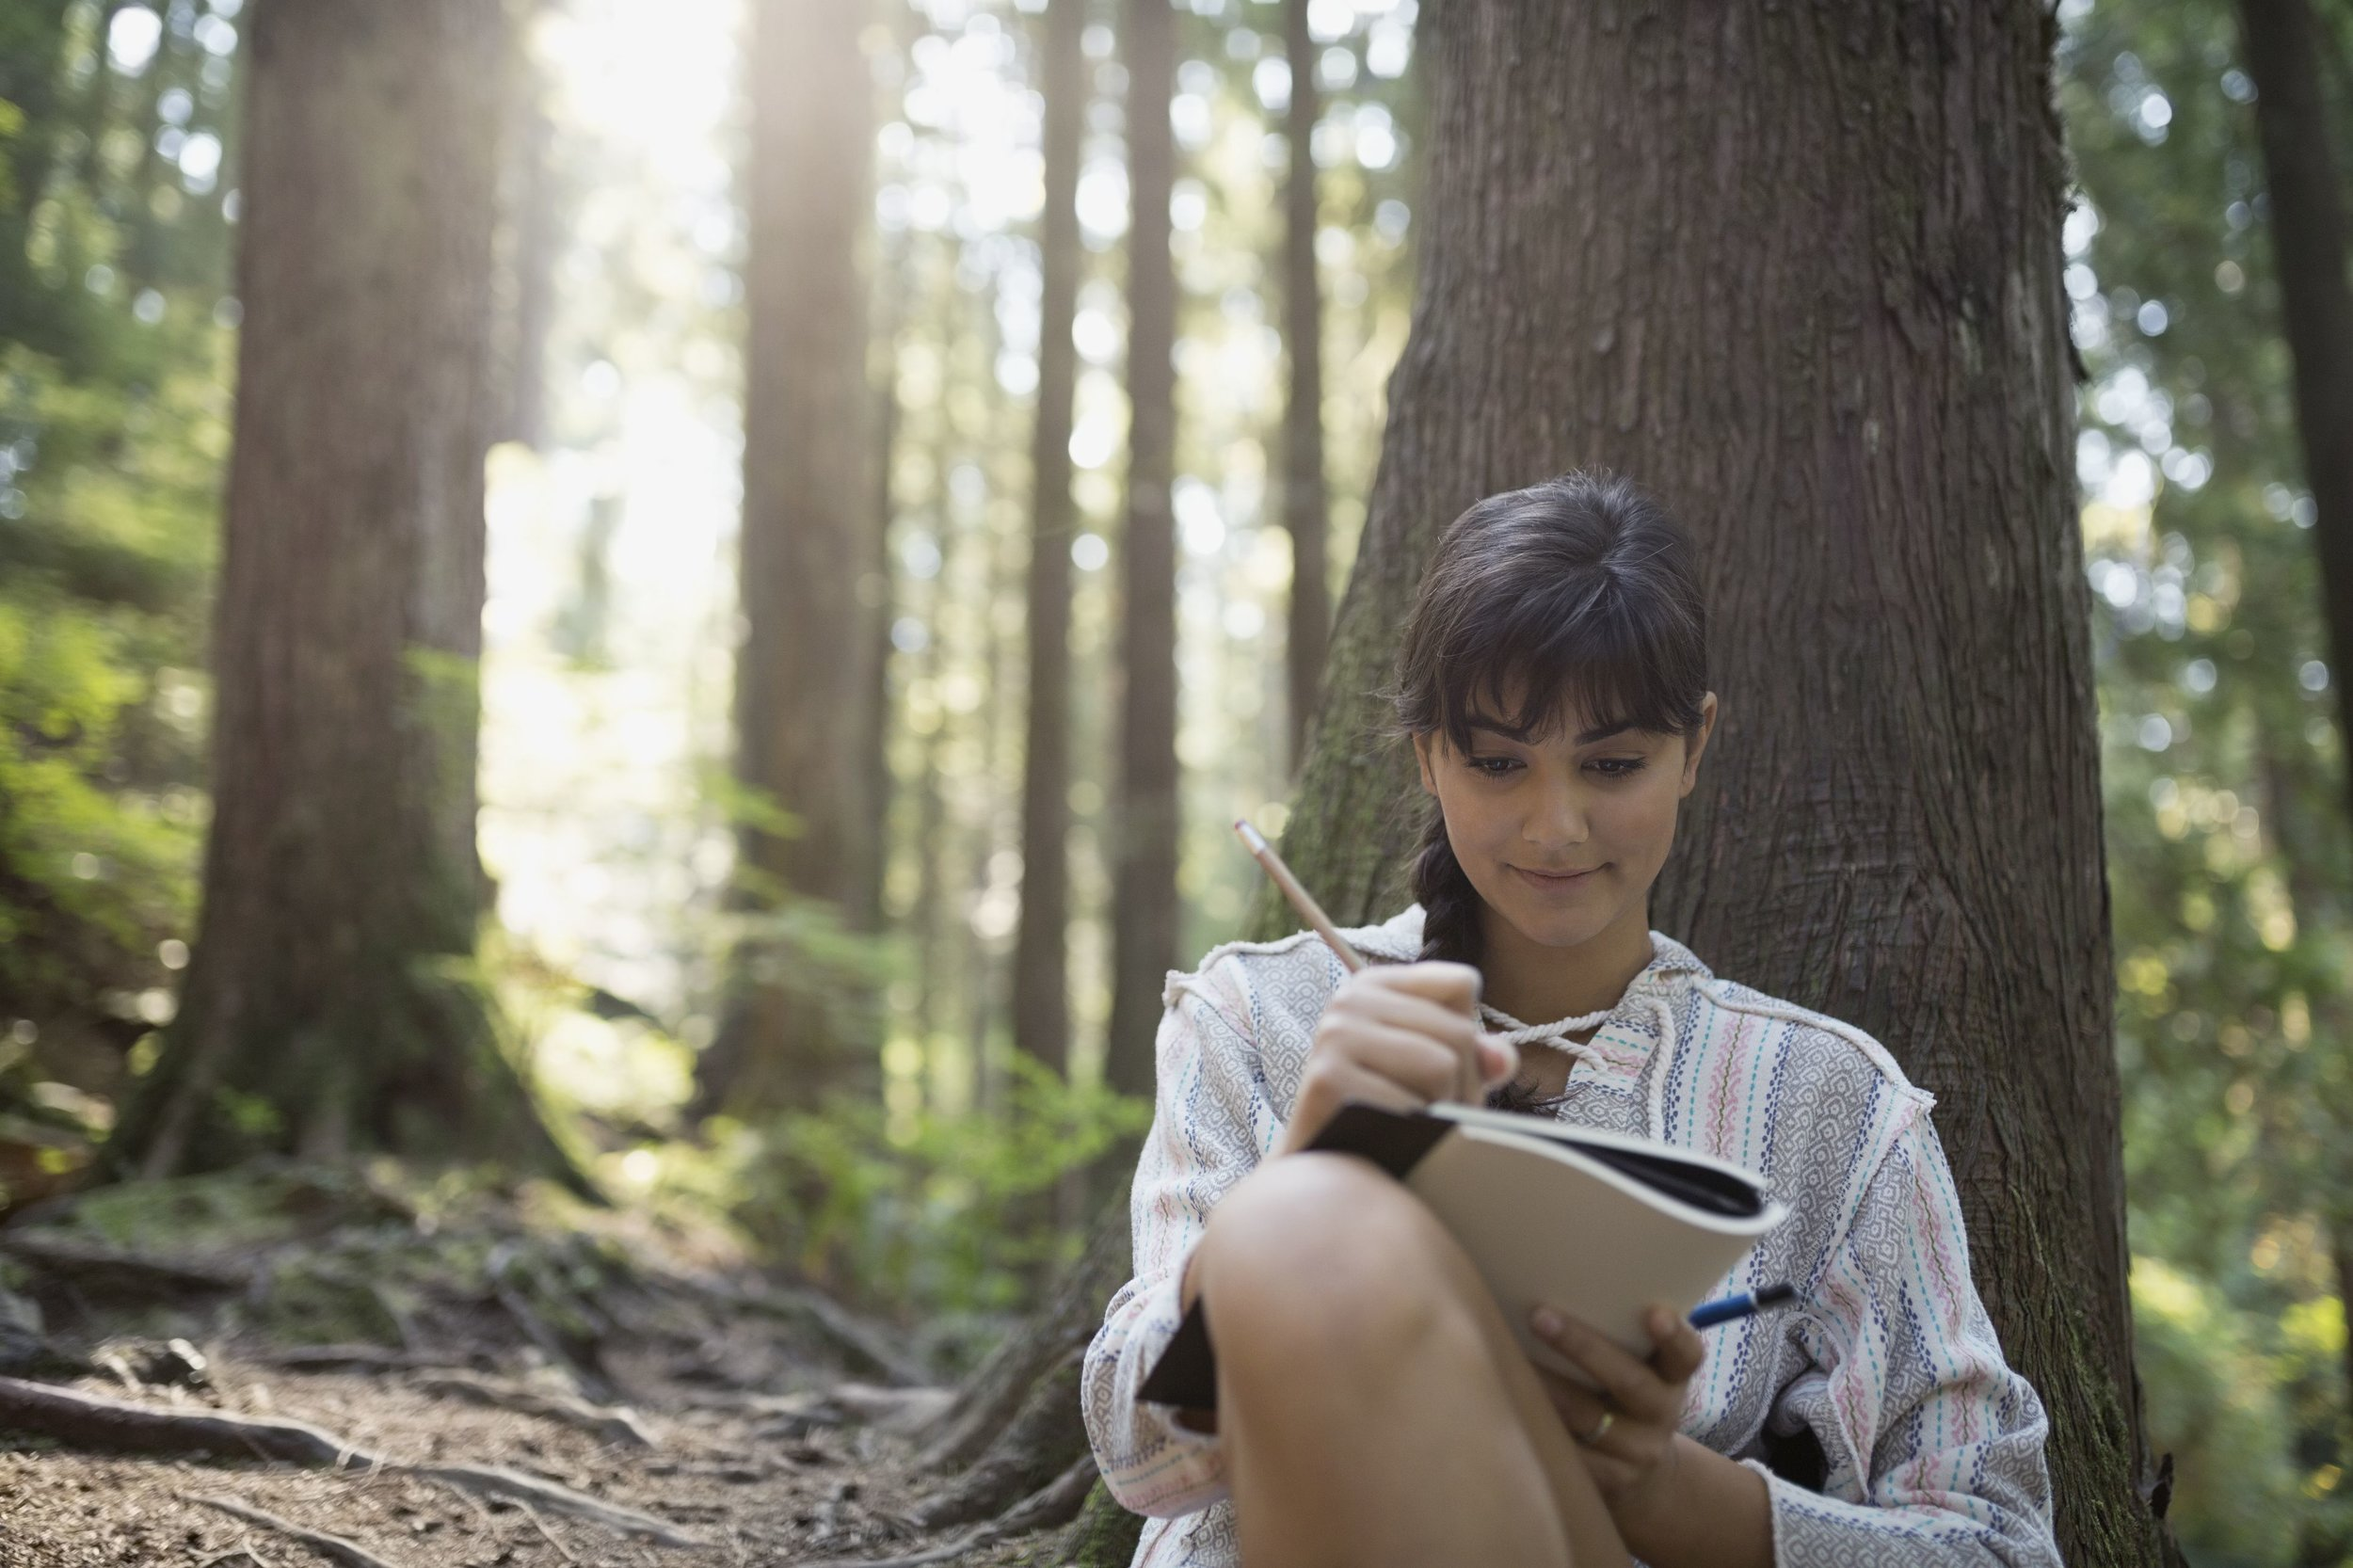 woman-writing-in-journal-against-tree-in-woods-522795579-5917477c5f9b5864703219cb.jpg